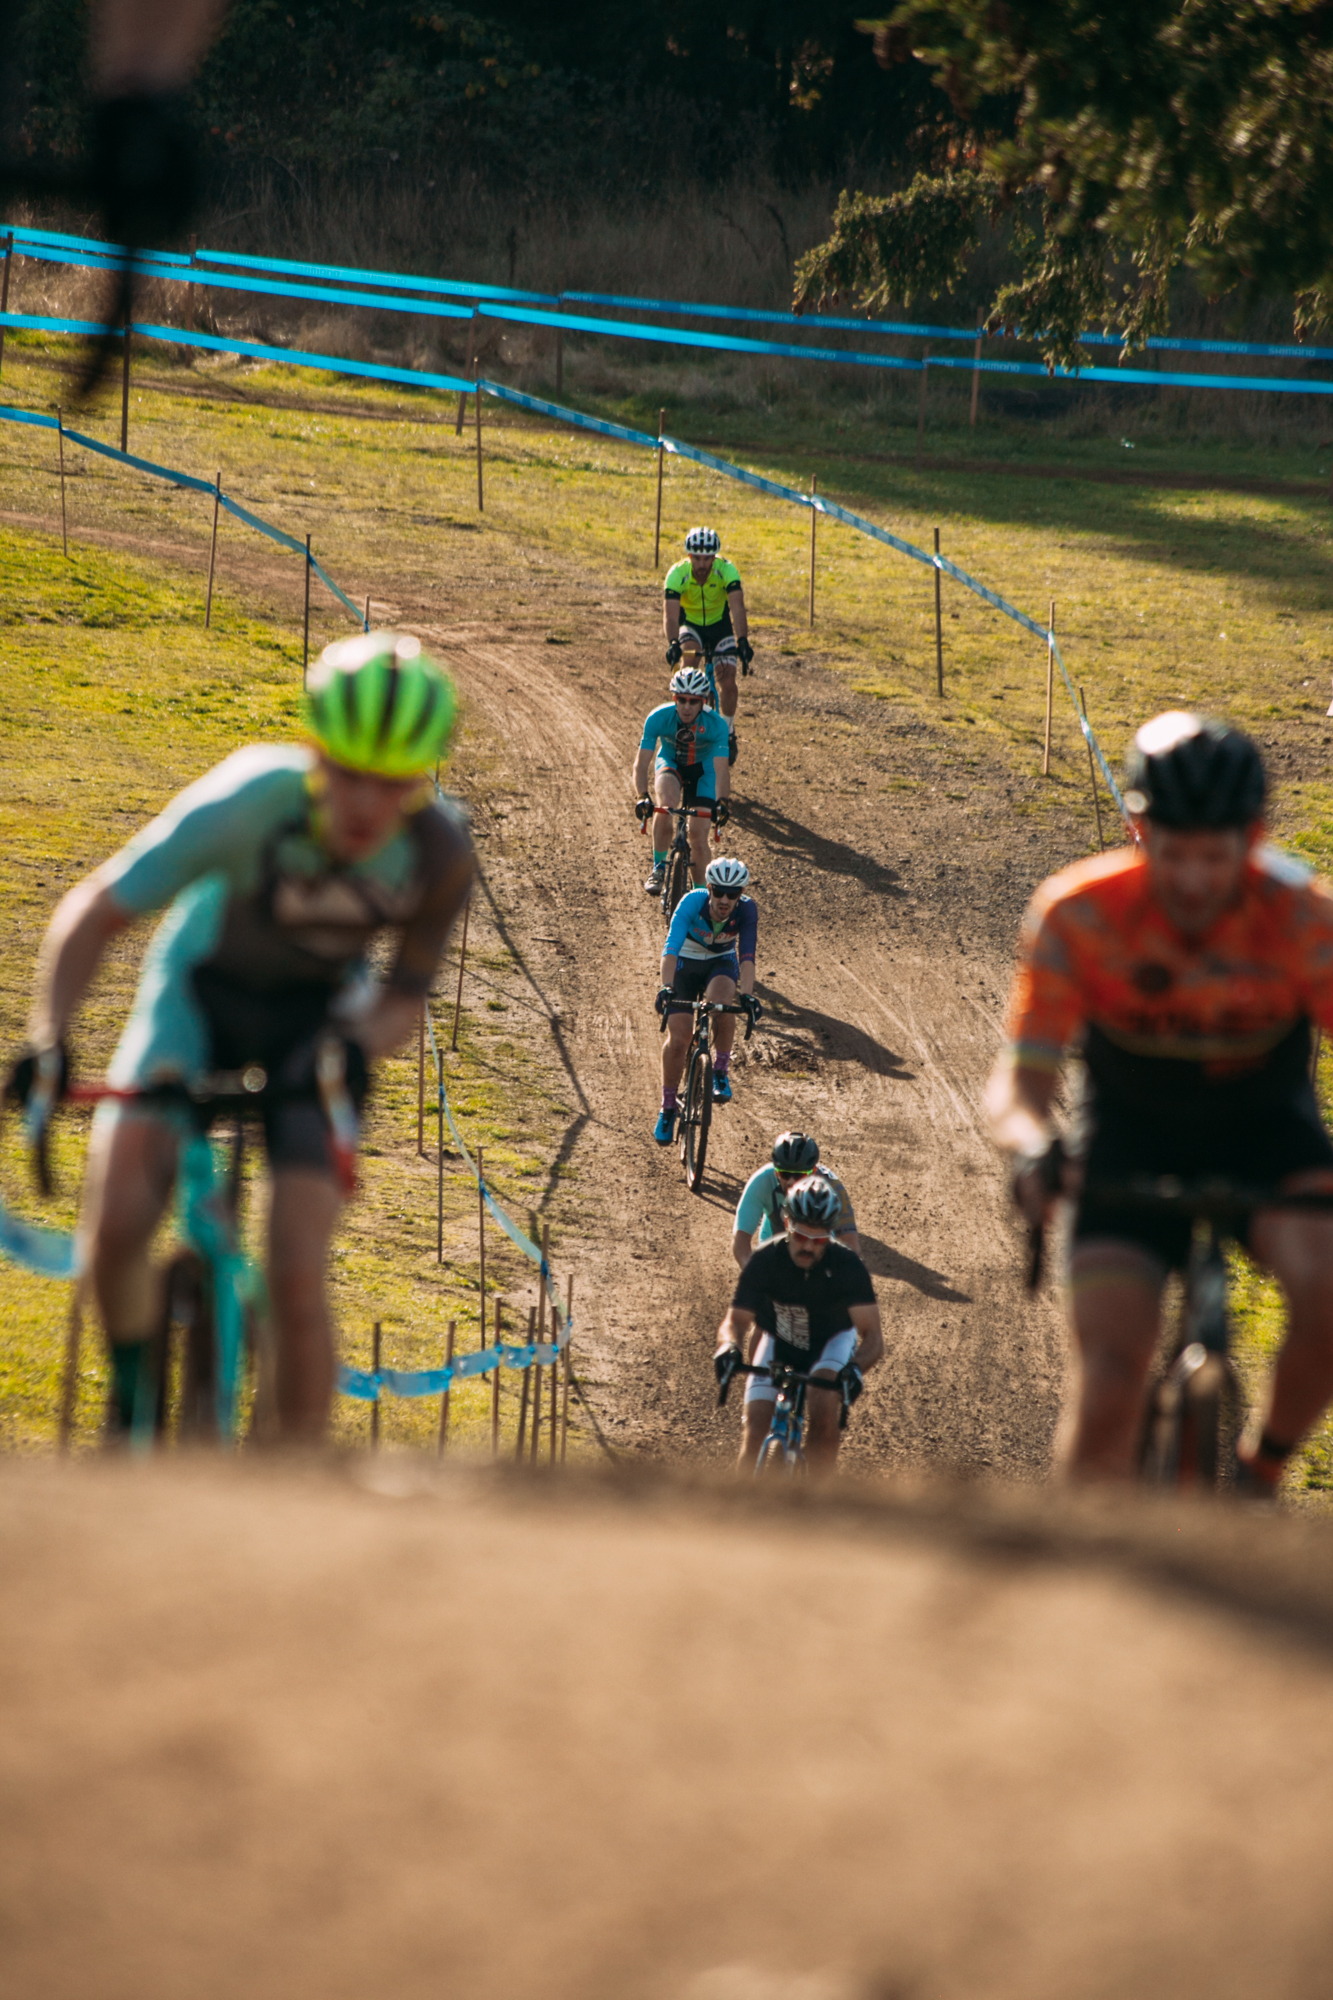 Cyclocross18_CCCX_RainierHS-229-mettlecycling.jpg